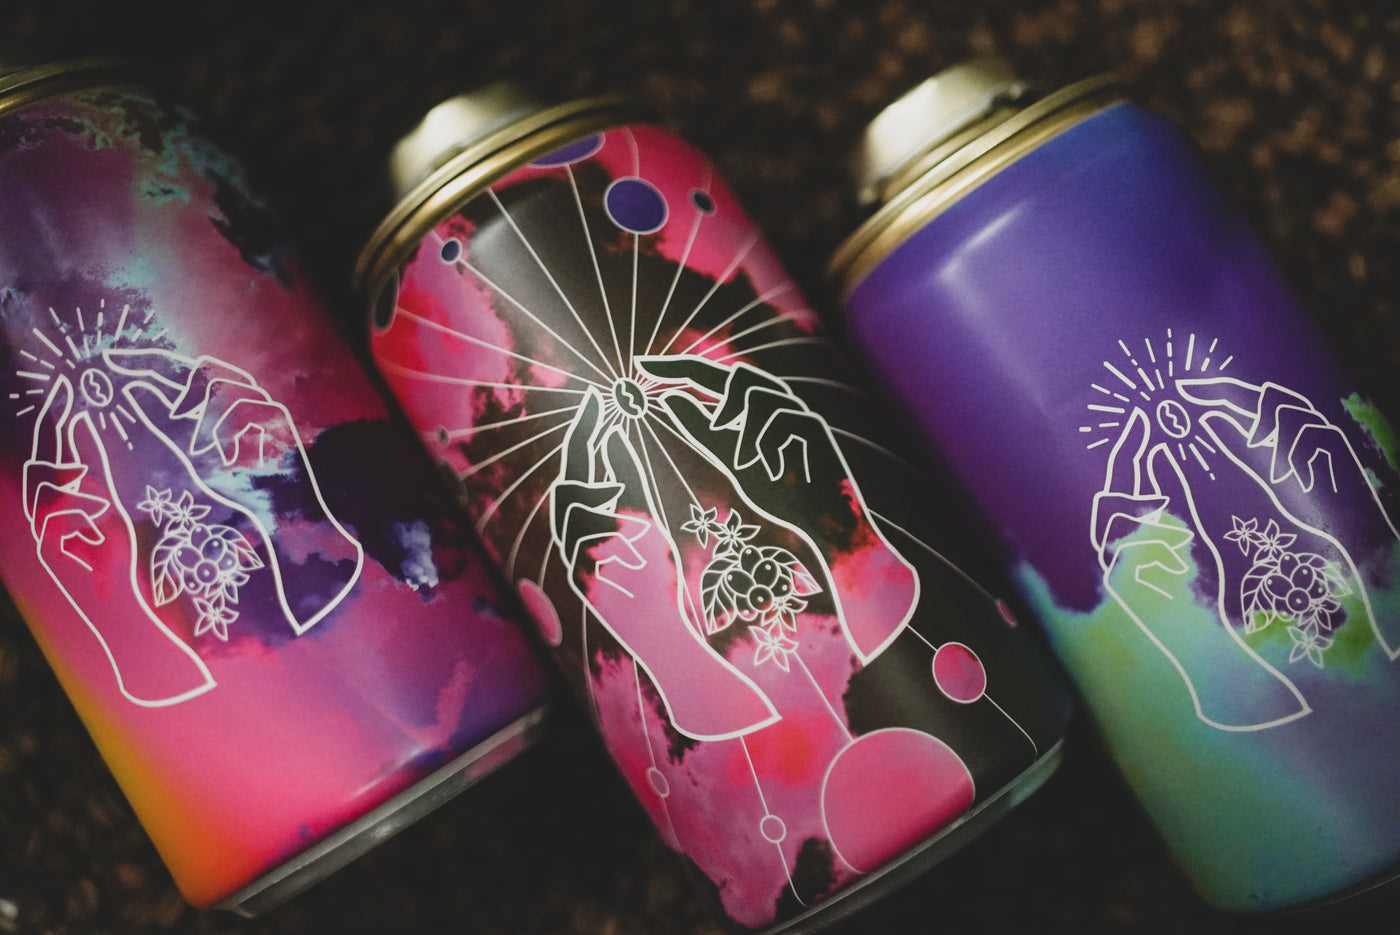 HOUSE OF FUNK – House of Funk Brewing Co.